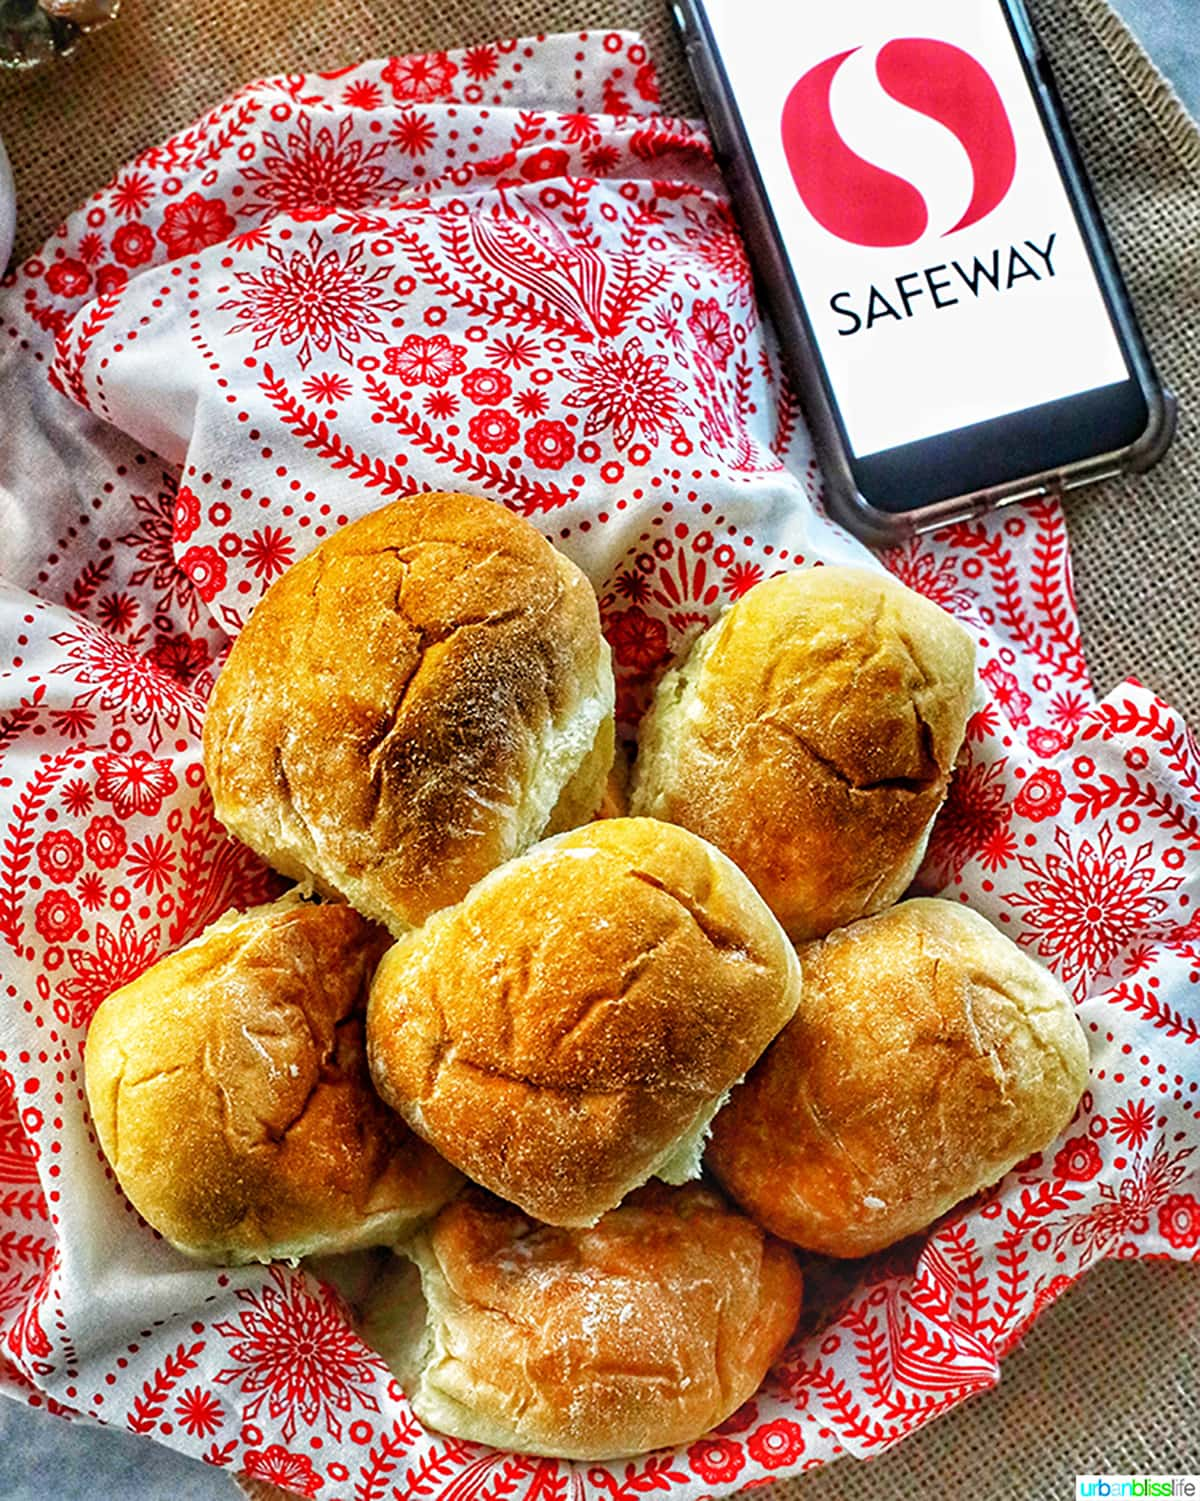 dinner rolls against red and white towel with safeway logo on phone